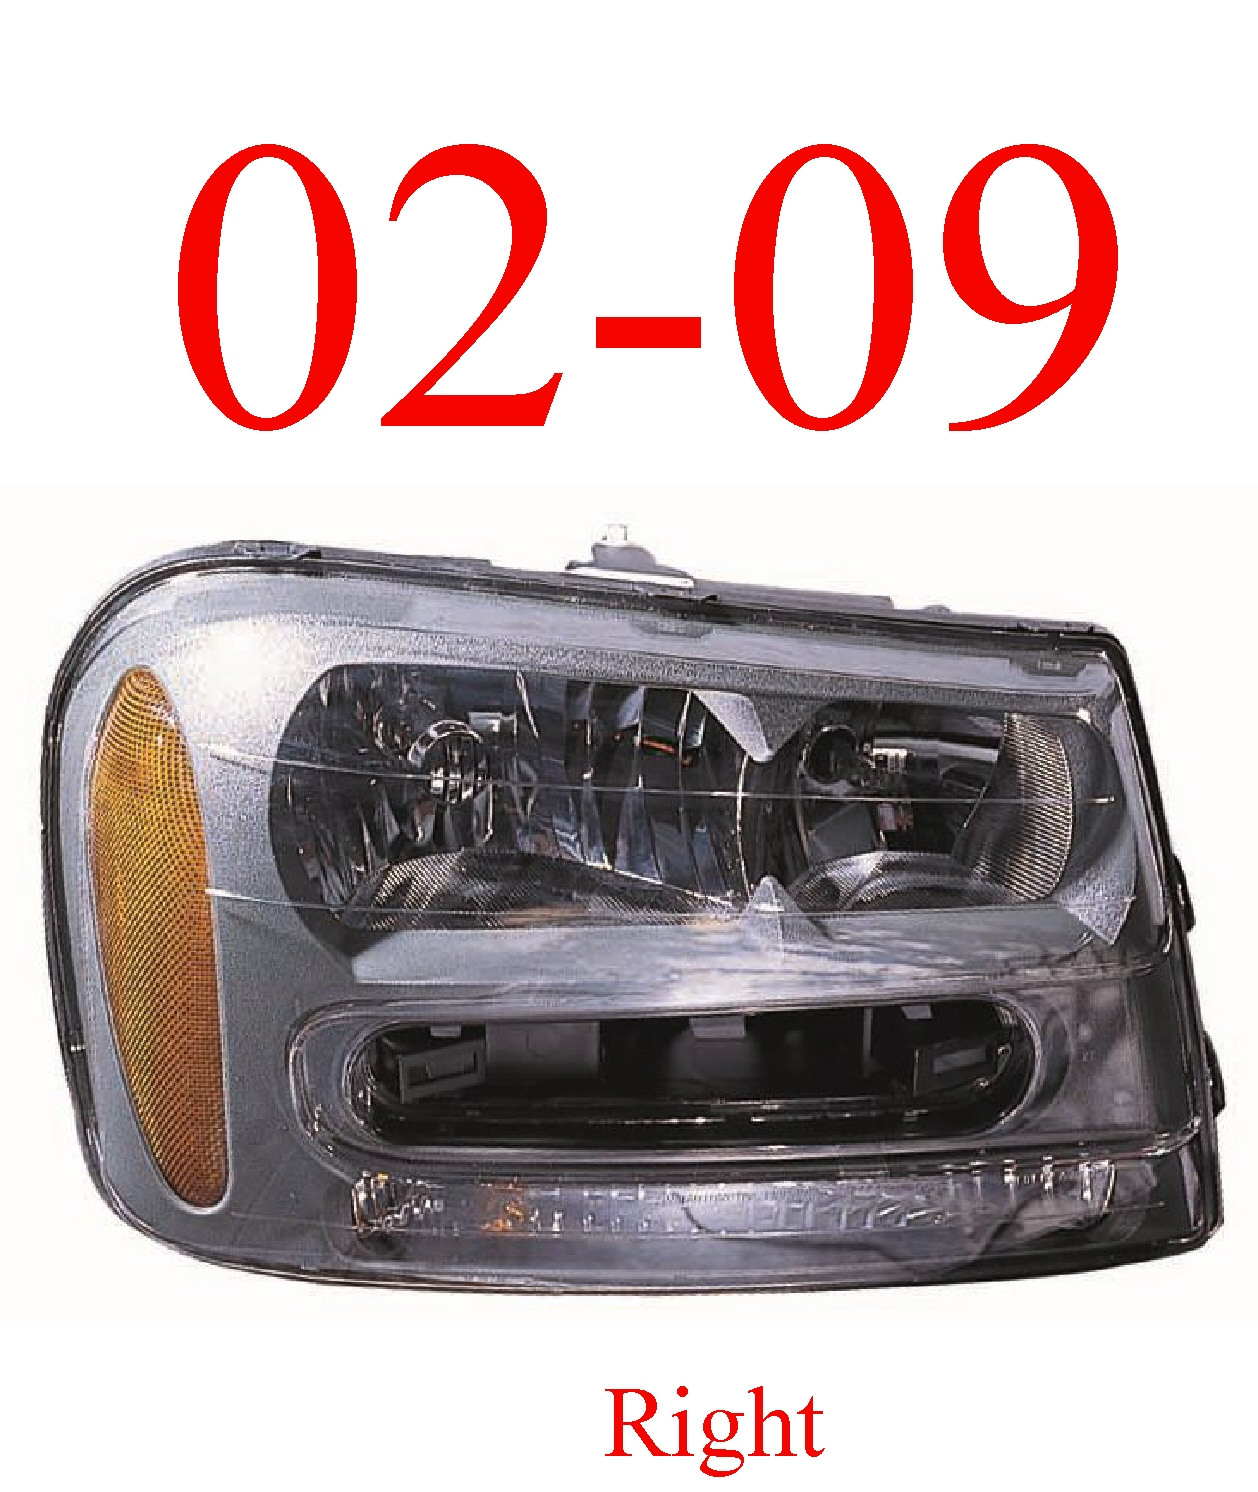 02-09 Trailblazer Right Head Light Assembly